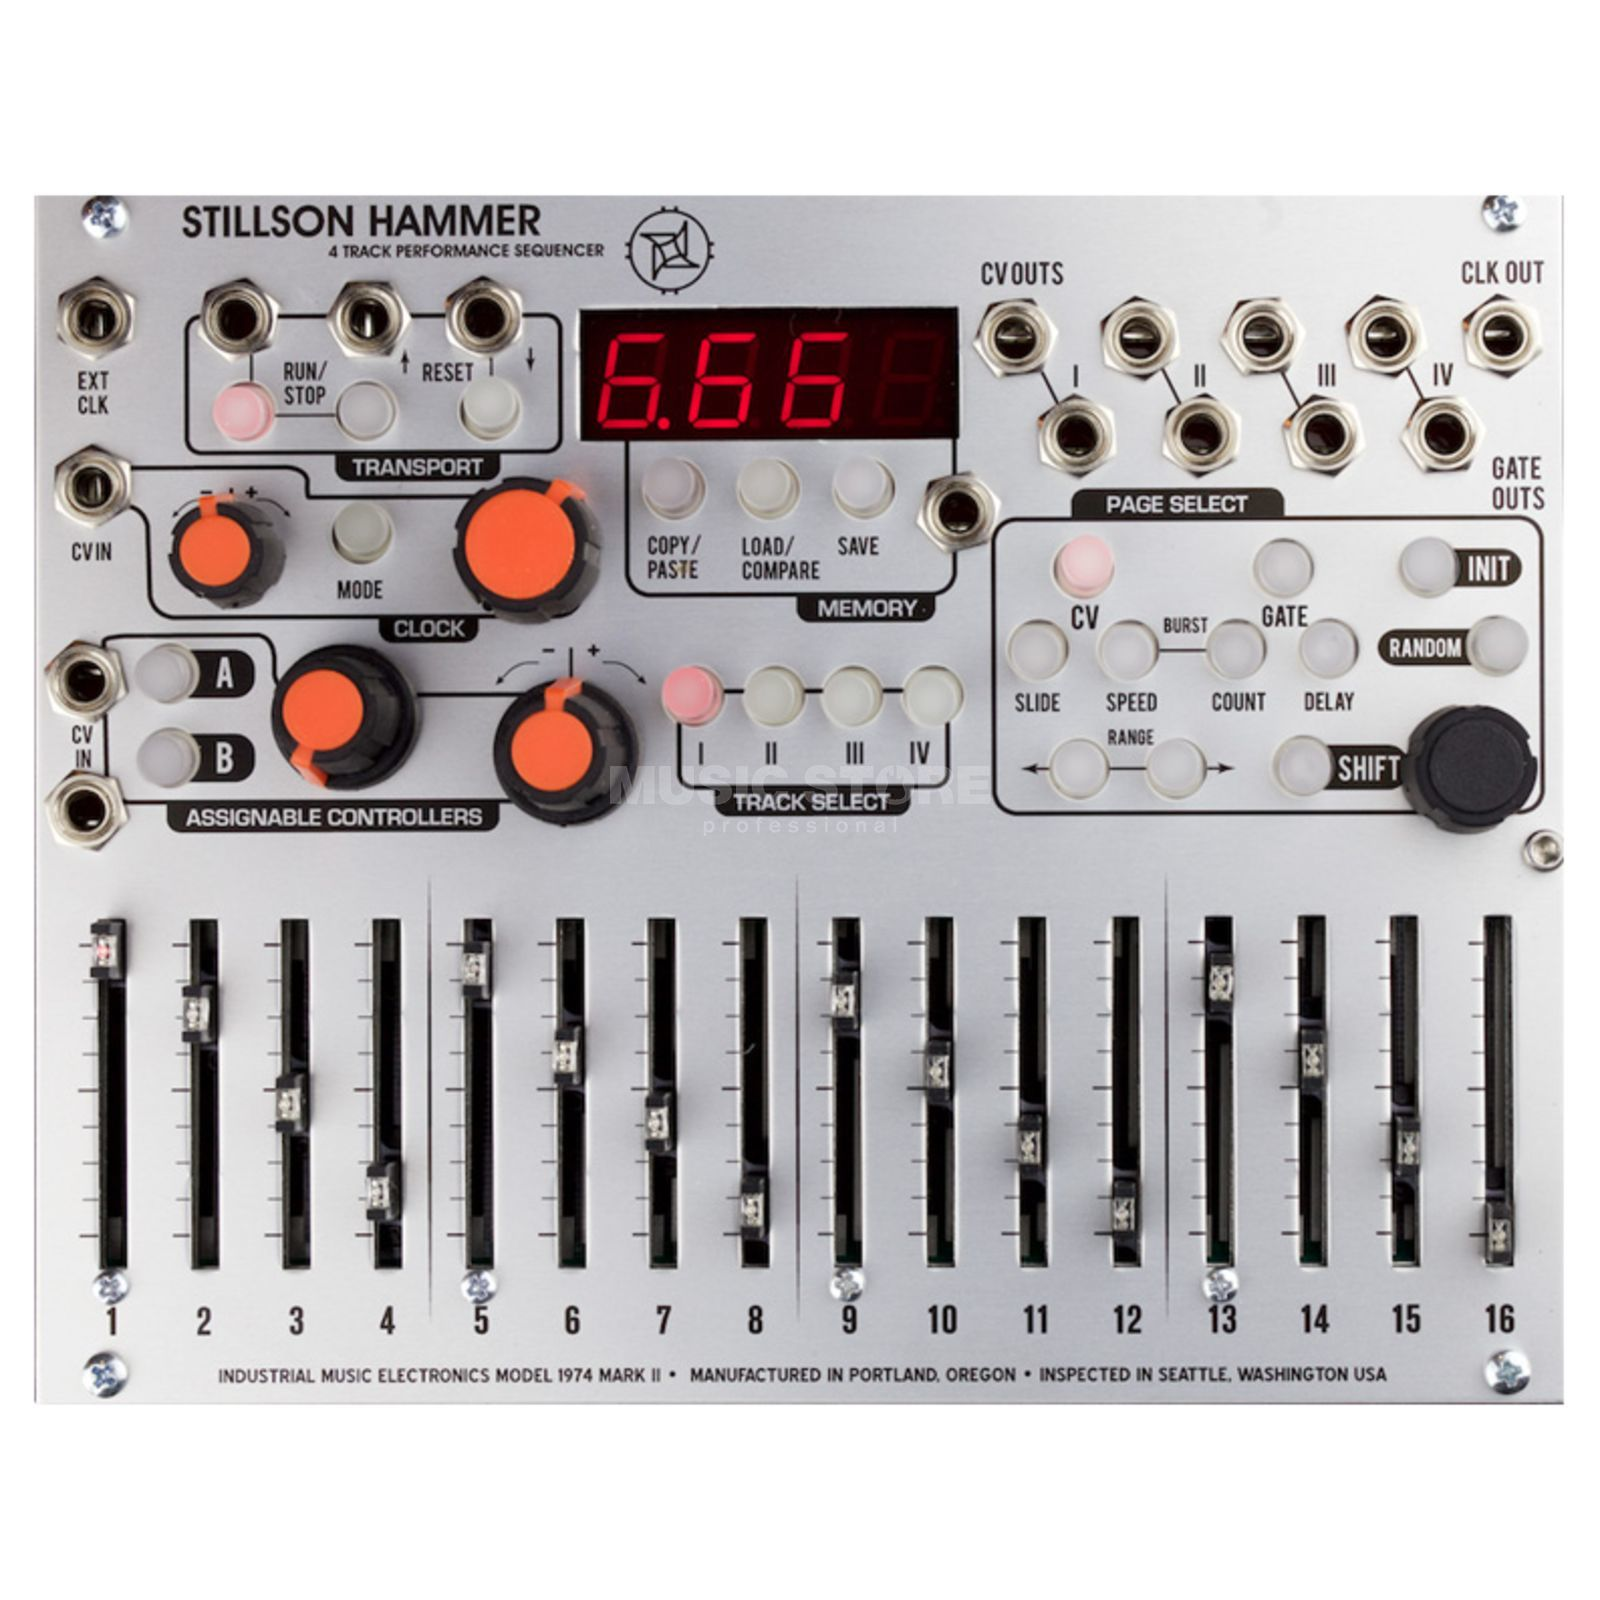 Industrial Music Electronics Stillson Hammer MK2 Product Image